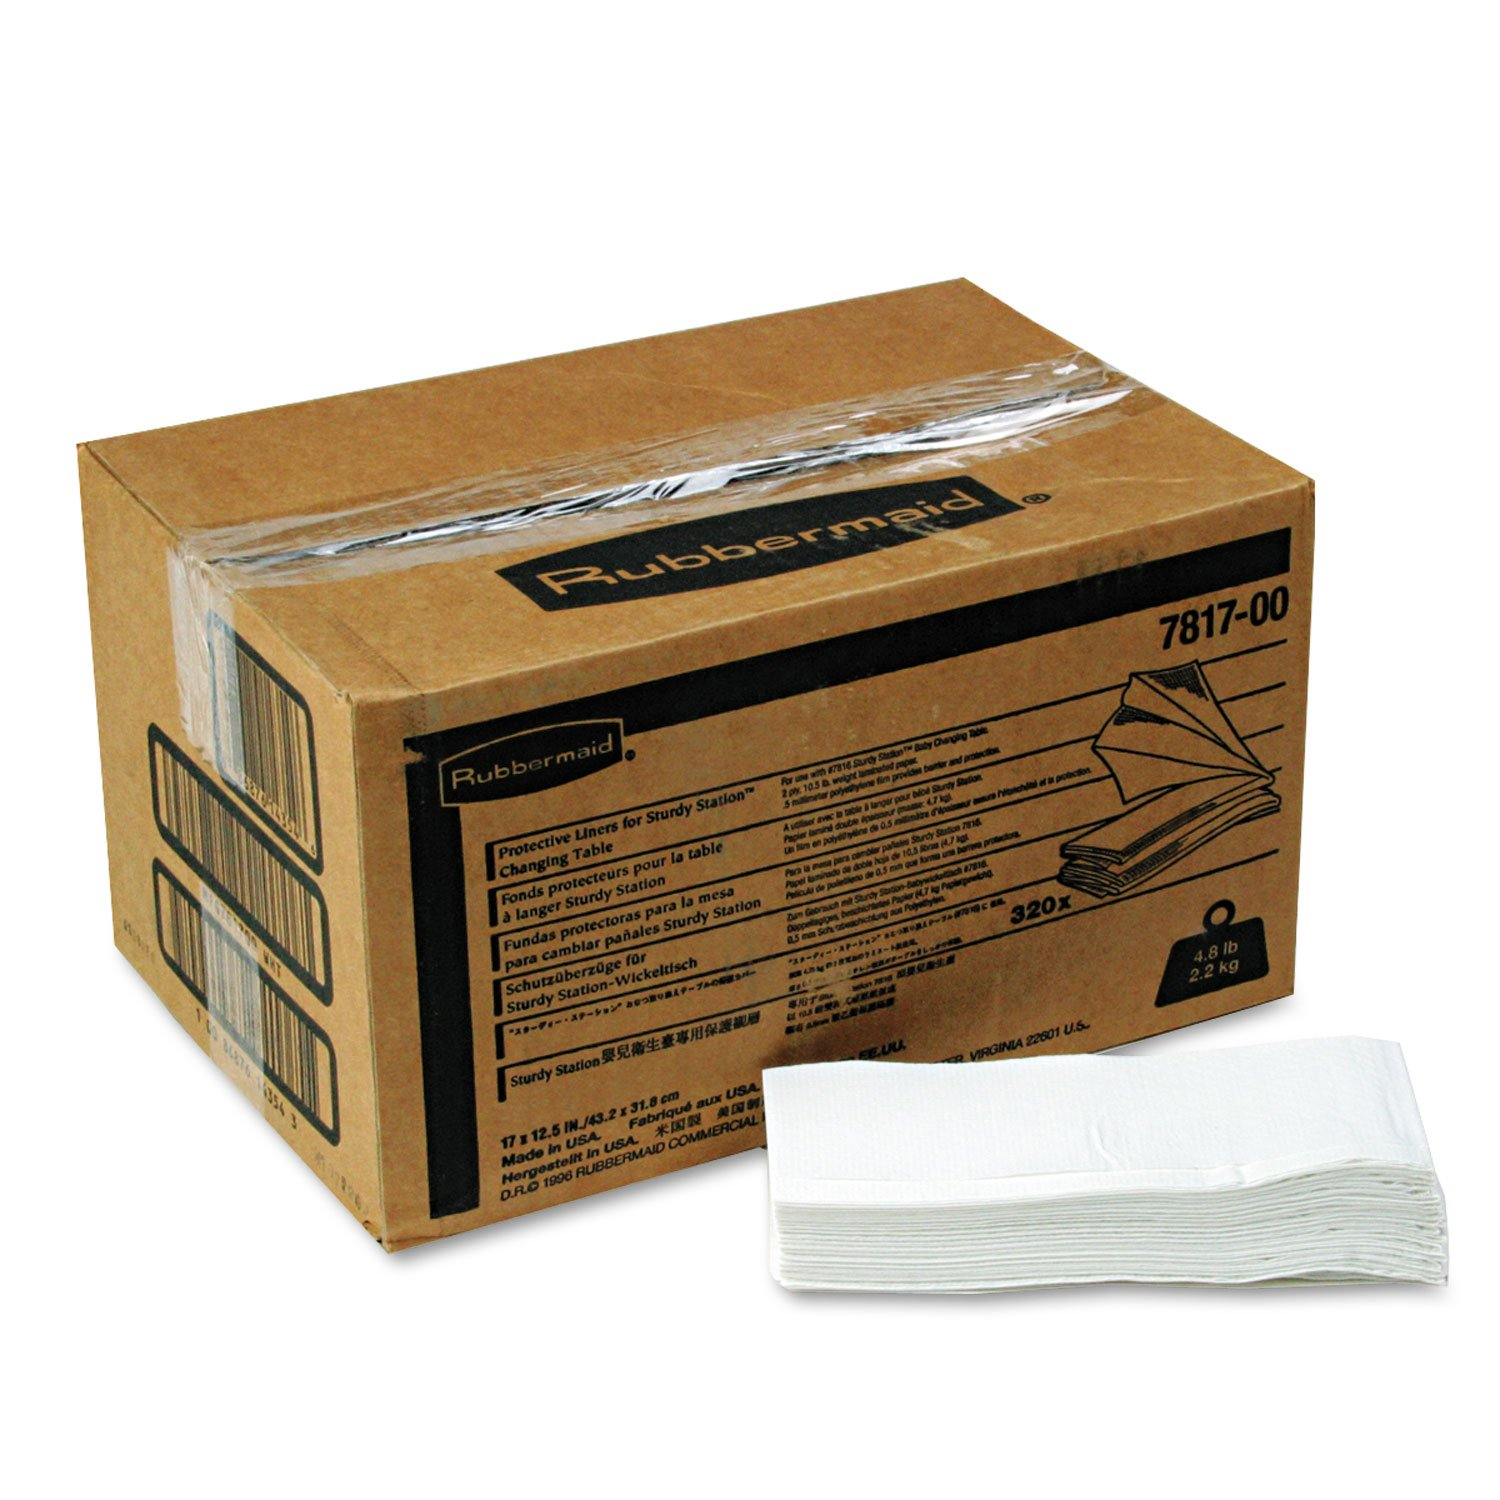 7817-88WE Rubbermaid Sturdy Station Changing Table Liner - 2 Ply - 320 / Carton - 13.25'' x 5.50'' - White